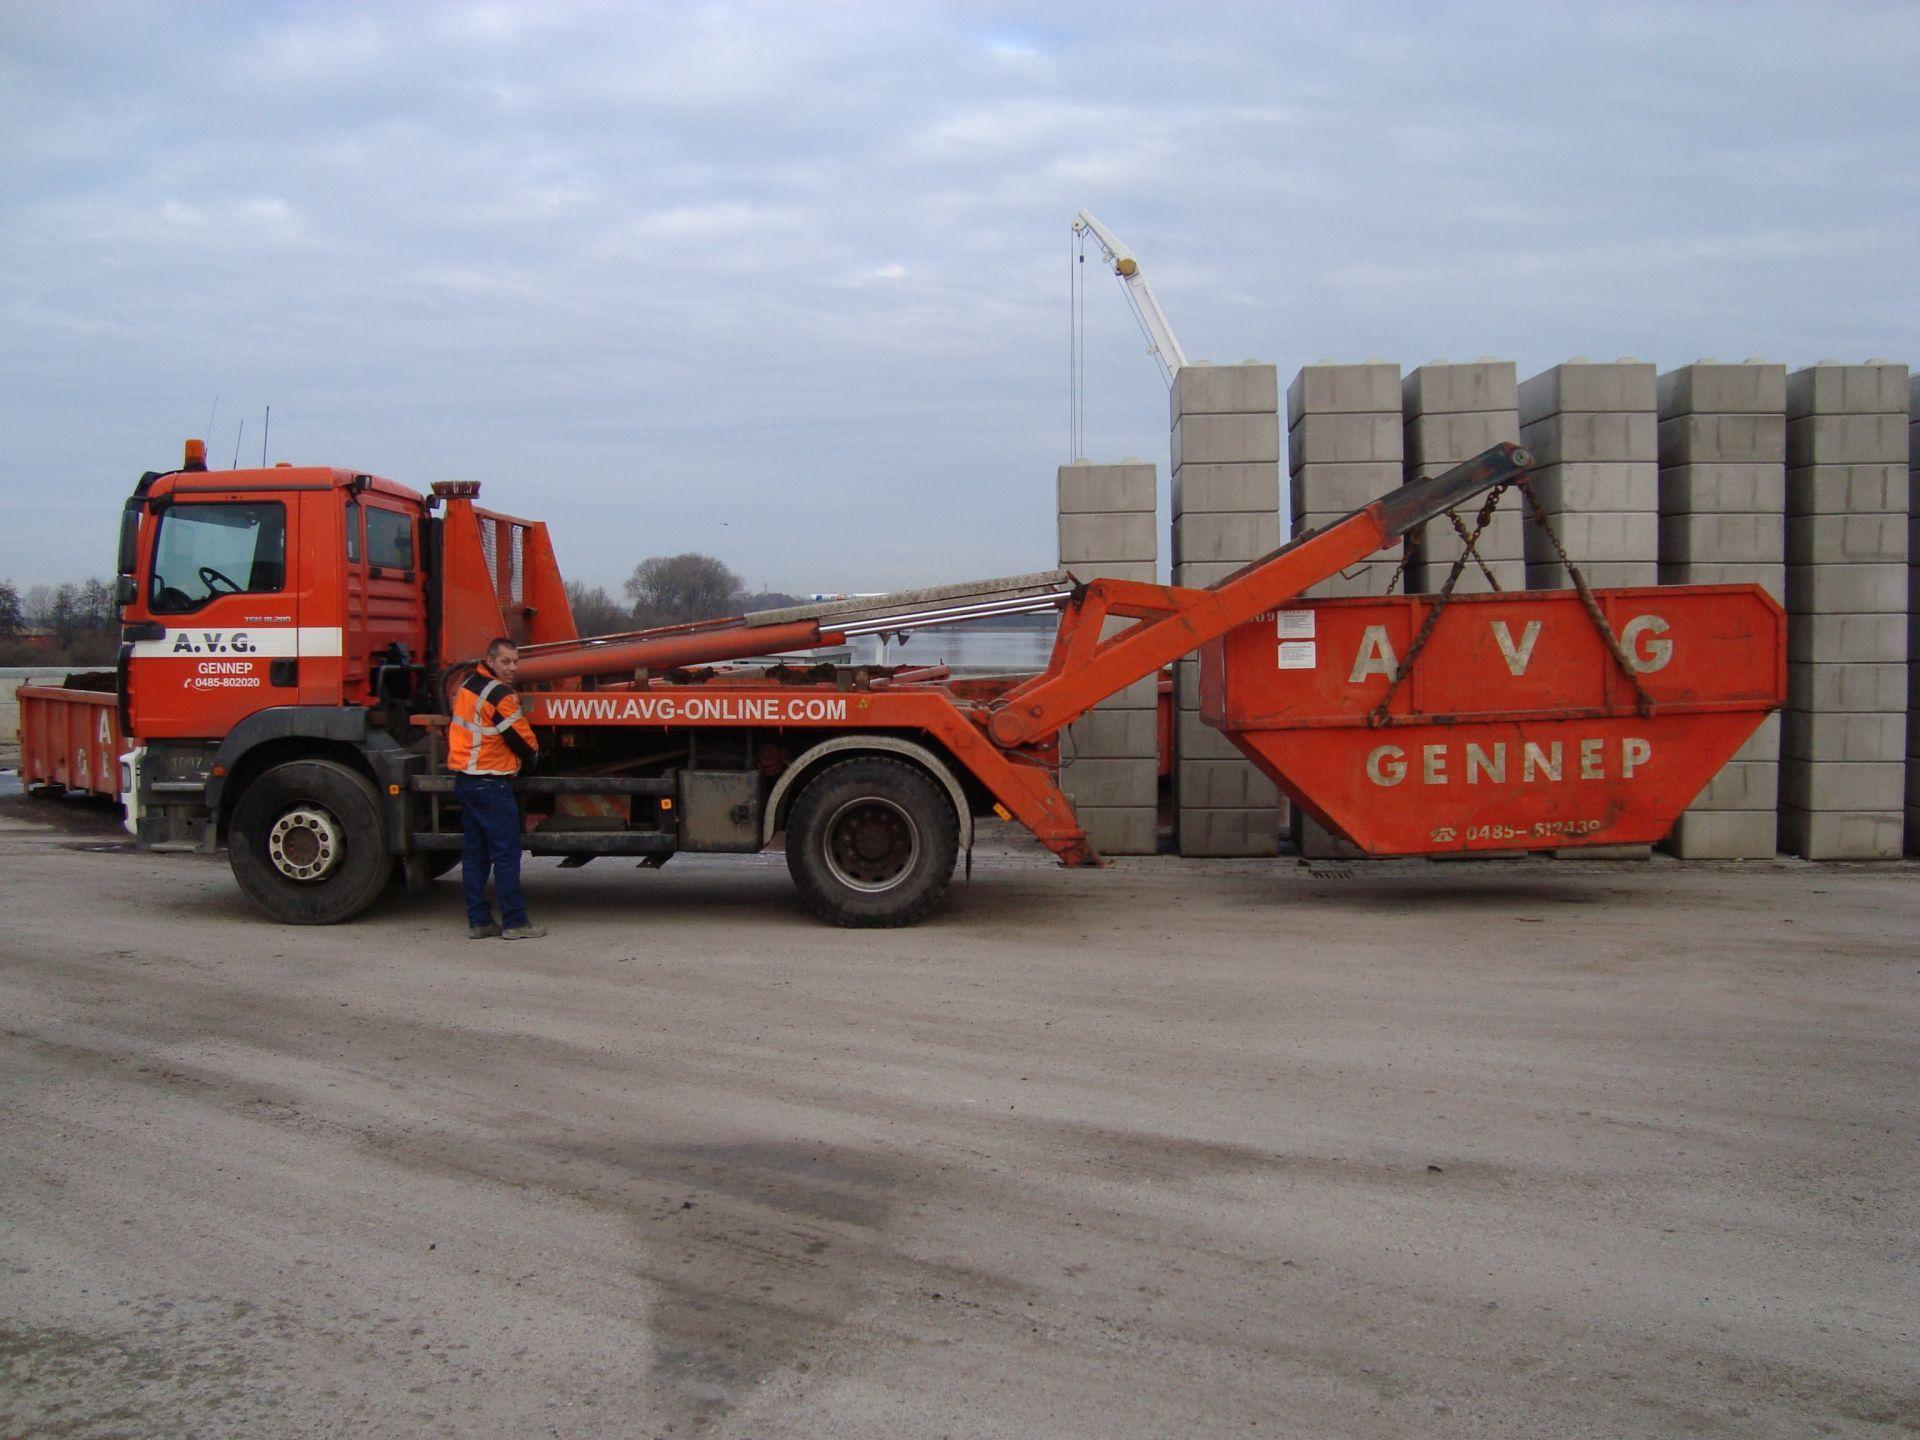 hoge-container-7-avg-bouwstoffen